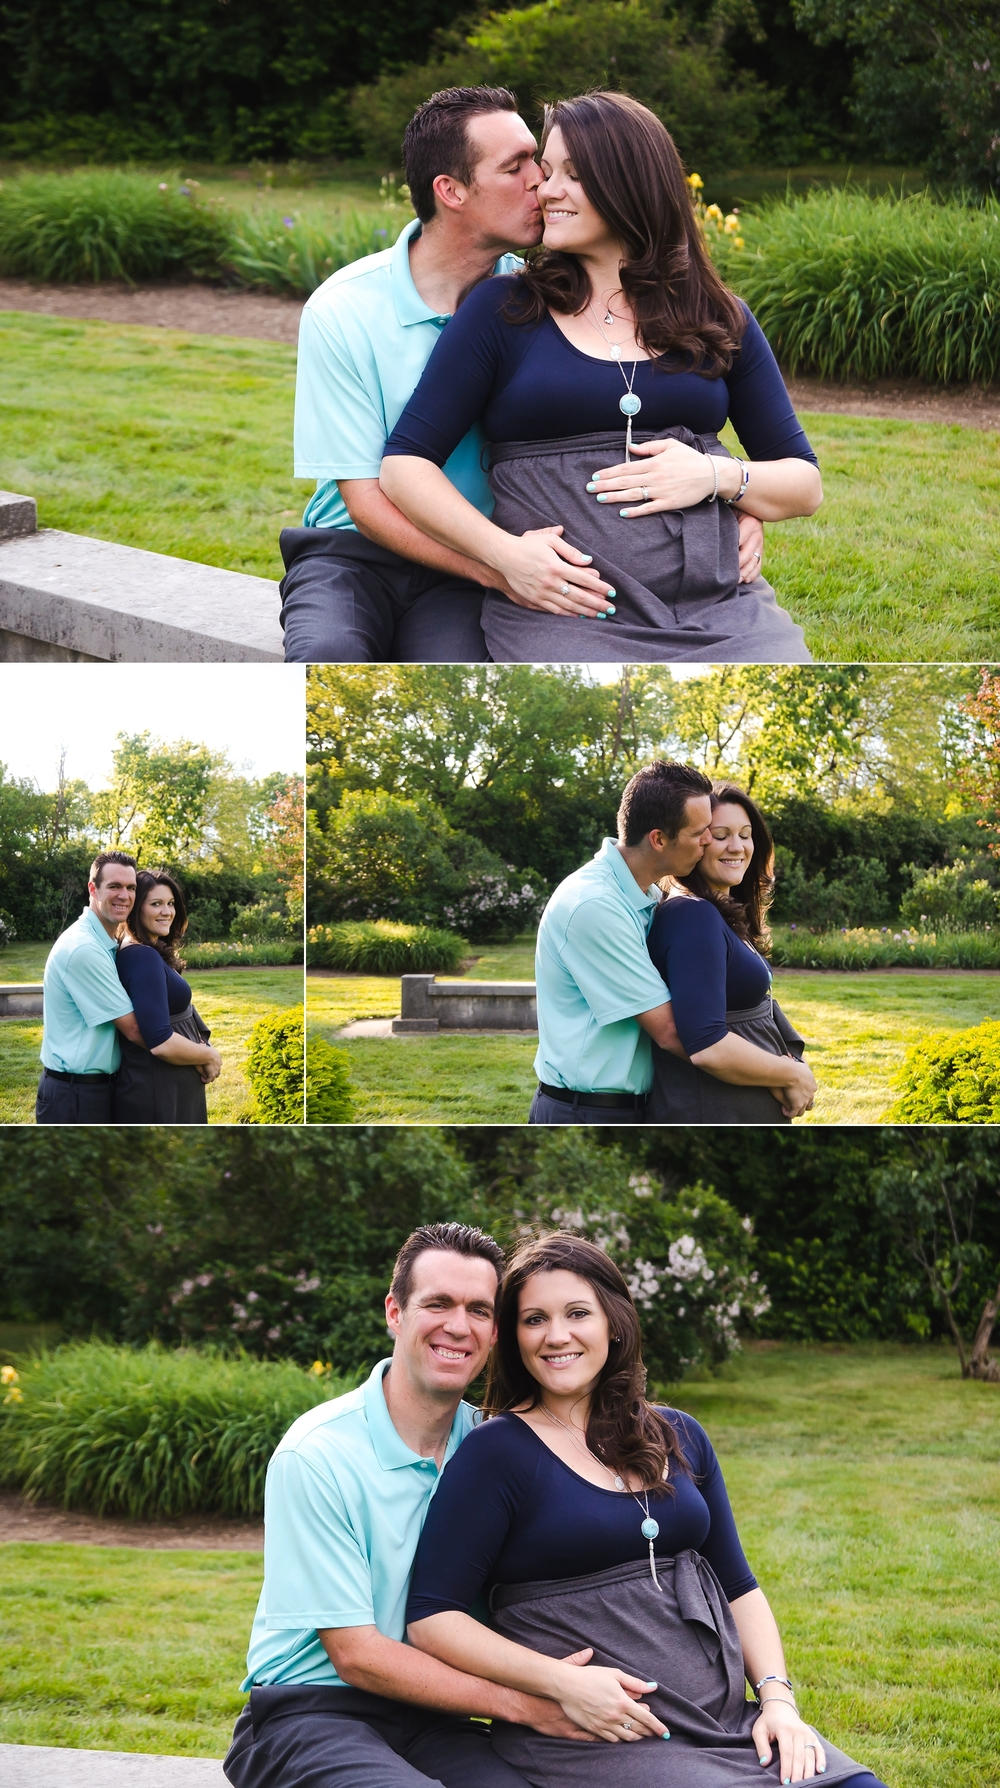 Expecting parents have an Indianapolis maternity session at an outdoor location.